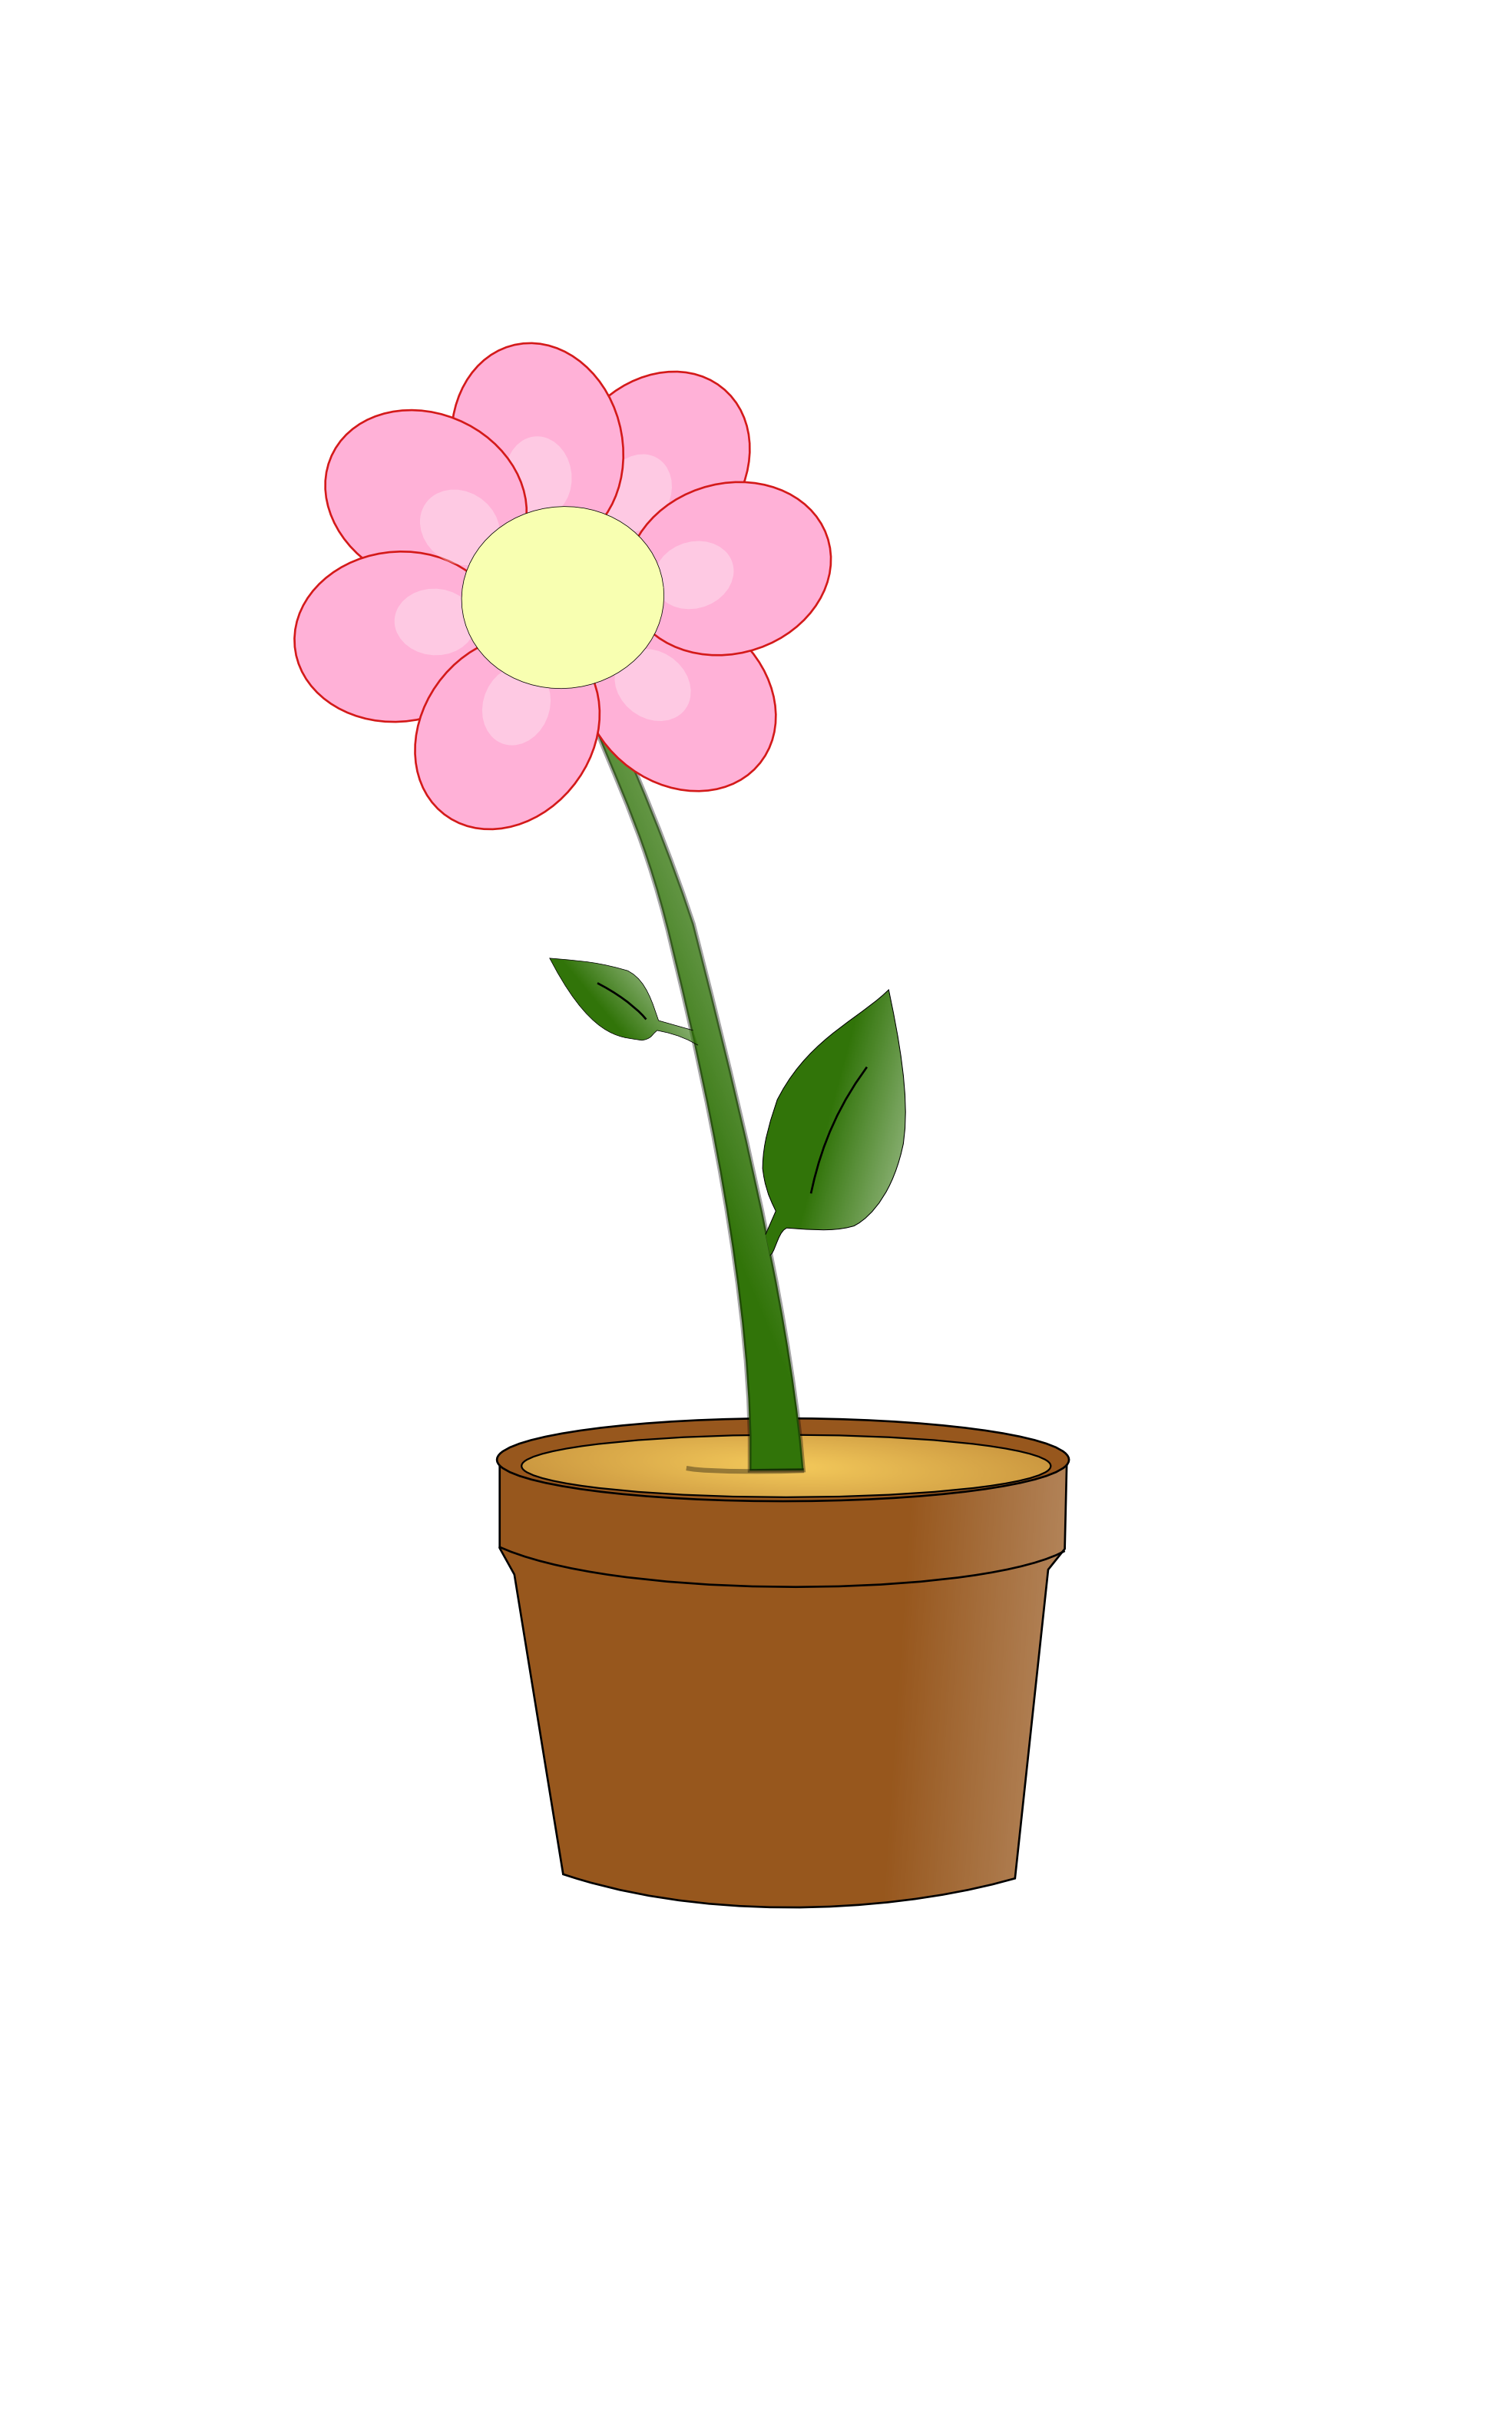 Blume svg #8, Download drawings